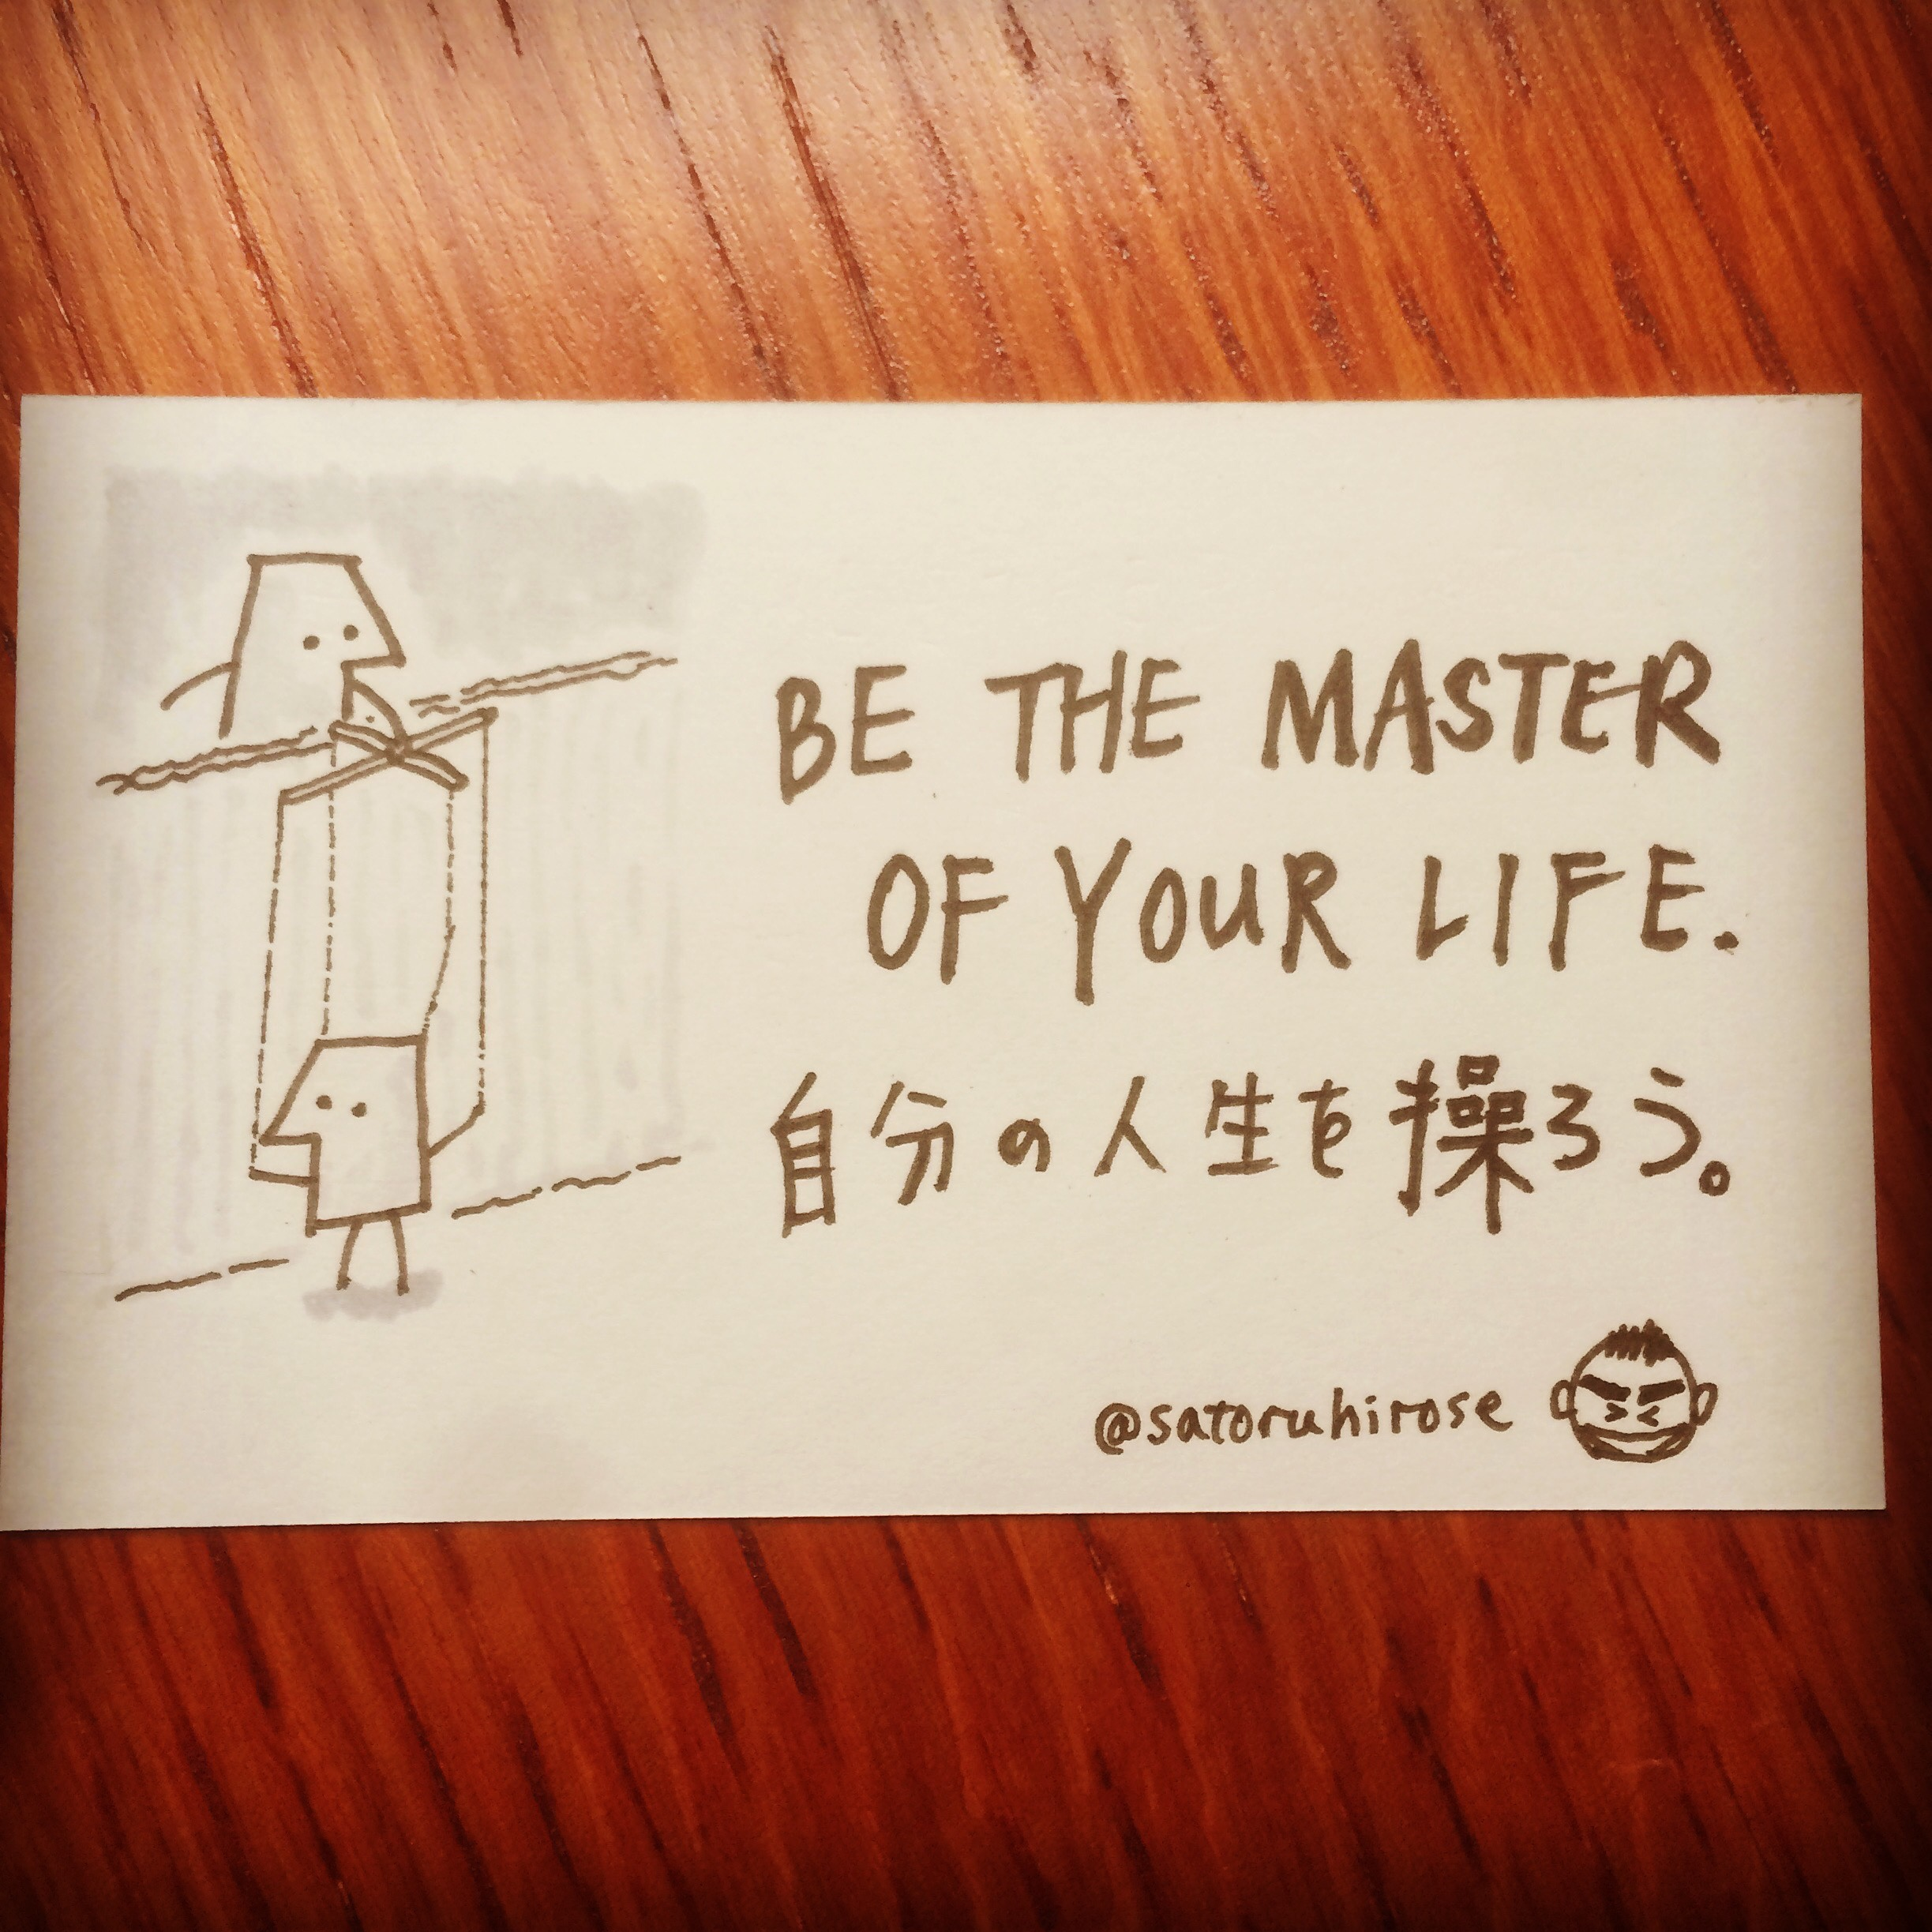 Be the master of your life.